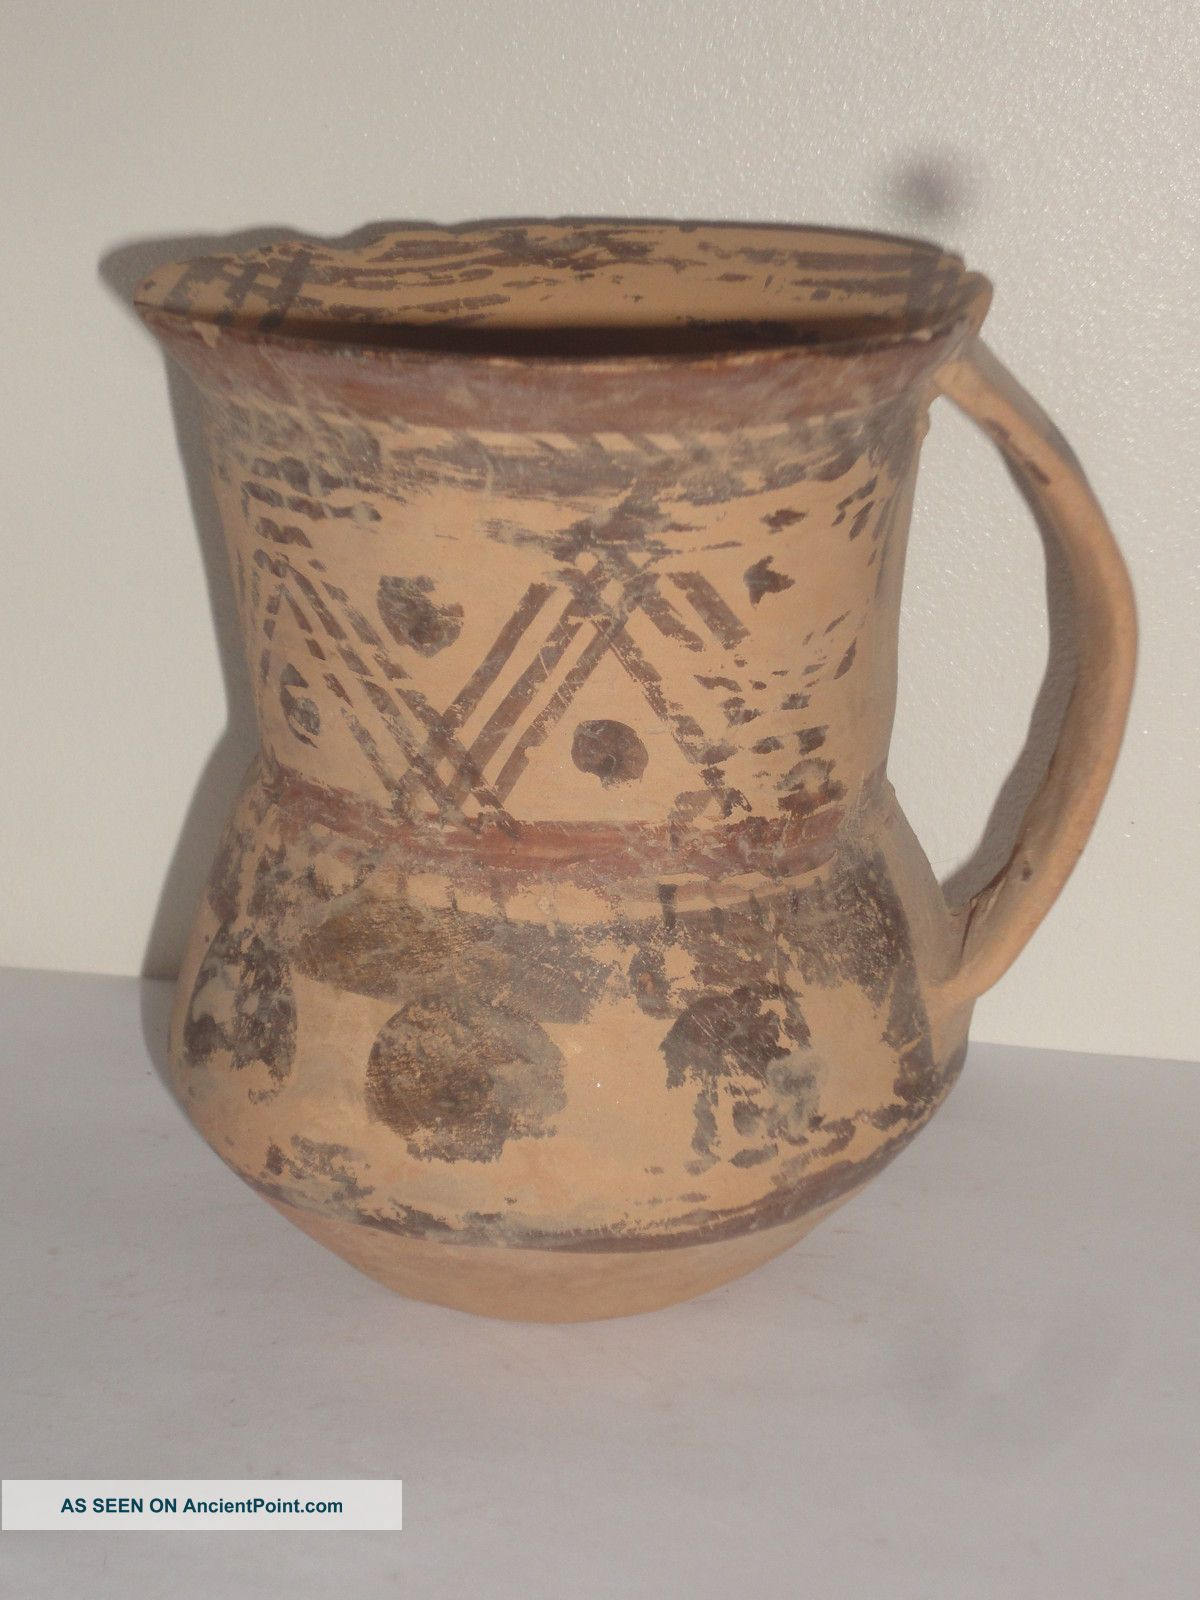 Near Eastern / Greek Antiquity Pottery Pot Jug Vase Black Painted Bronze Age Near Eastern photo